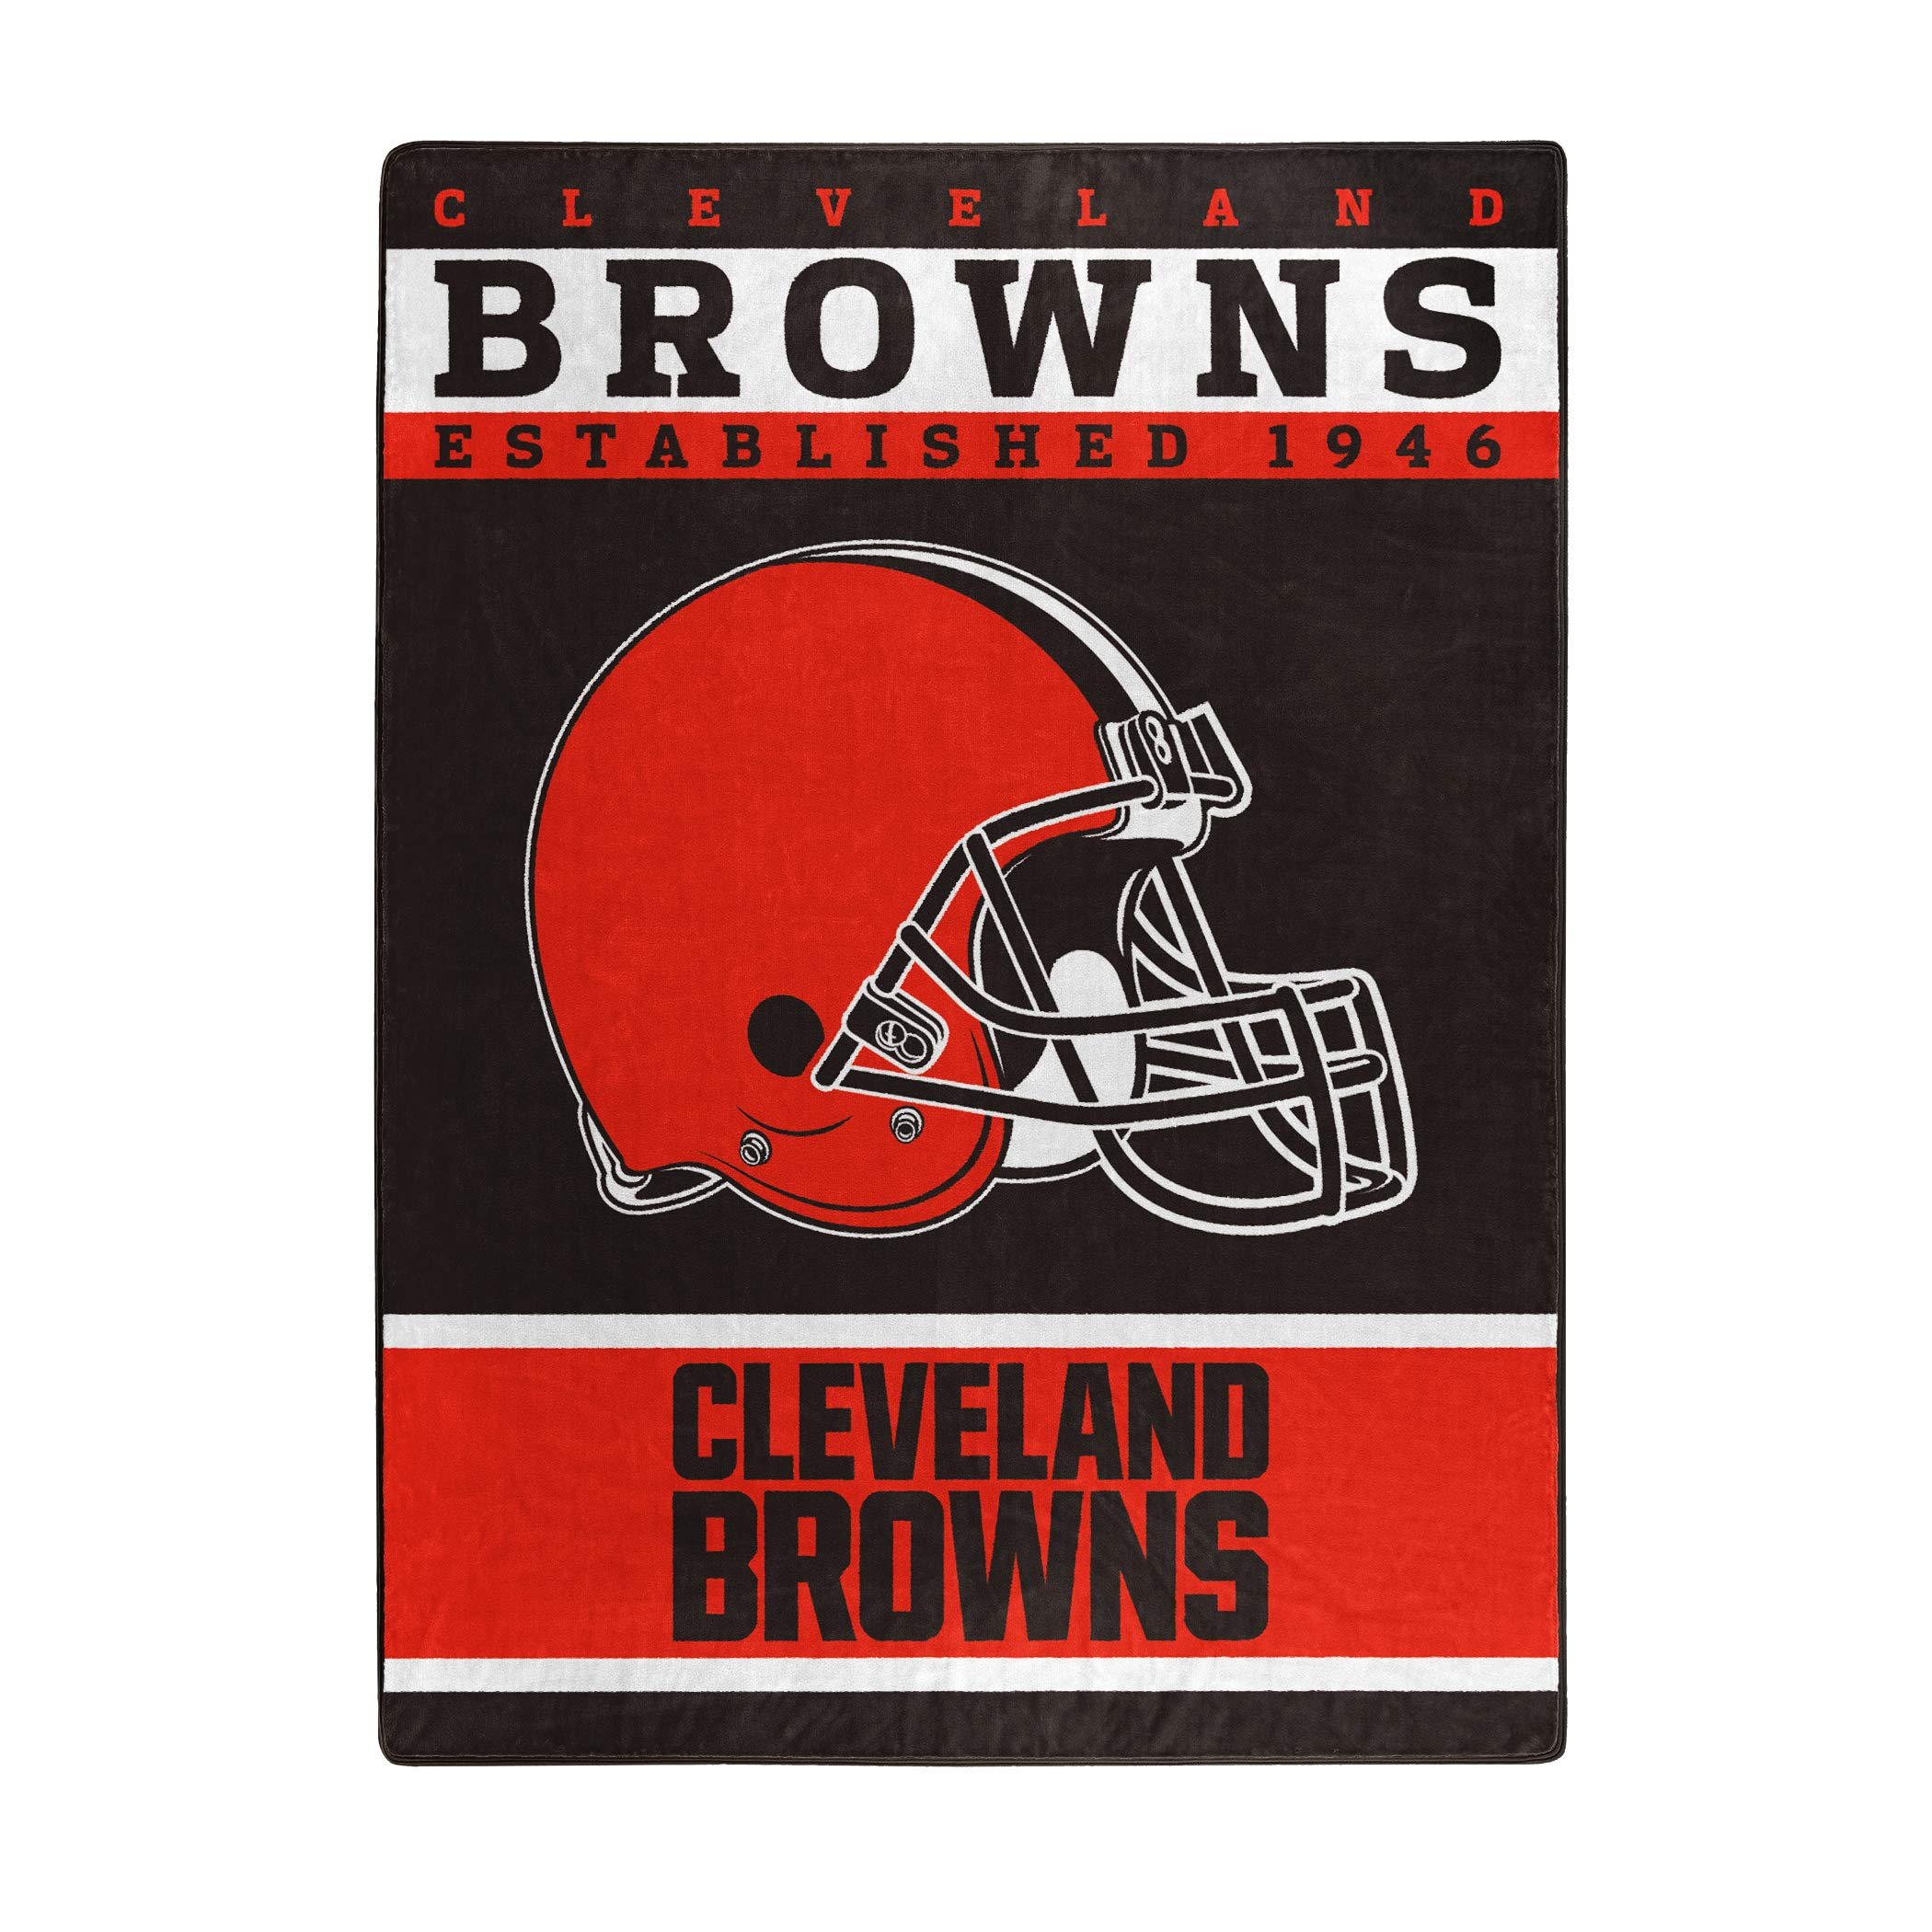 The Northwest Company Officially Licensed NFL Cleveland Browns 12th Man Plush Raschel Throw Blanket, 60'' x 80''